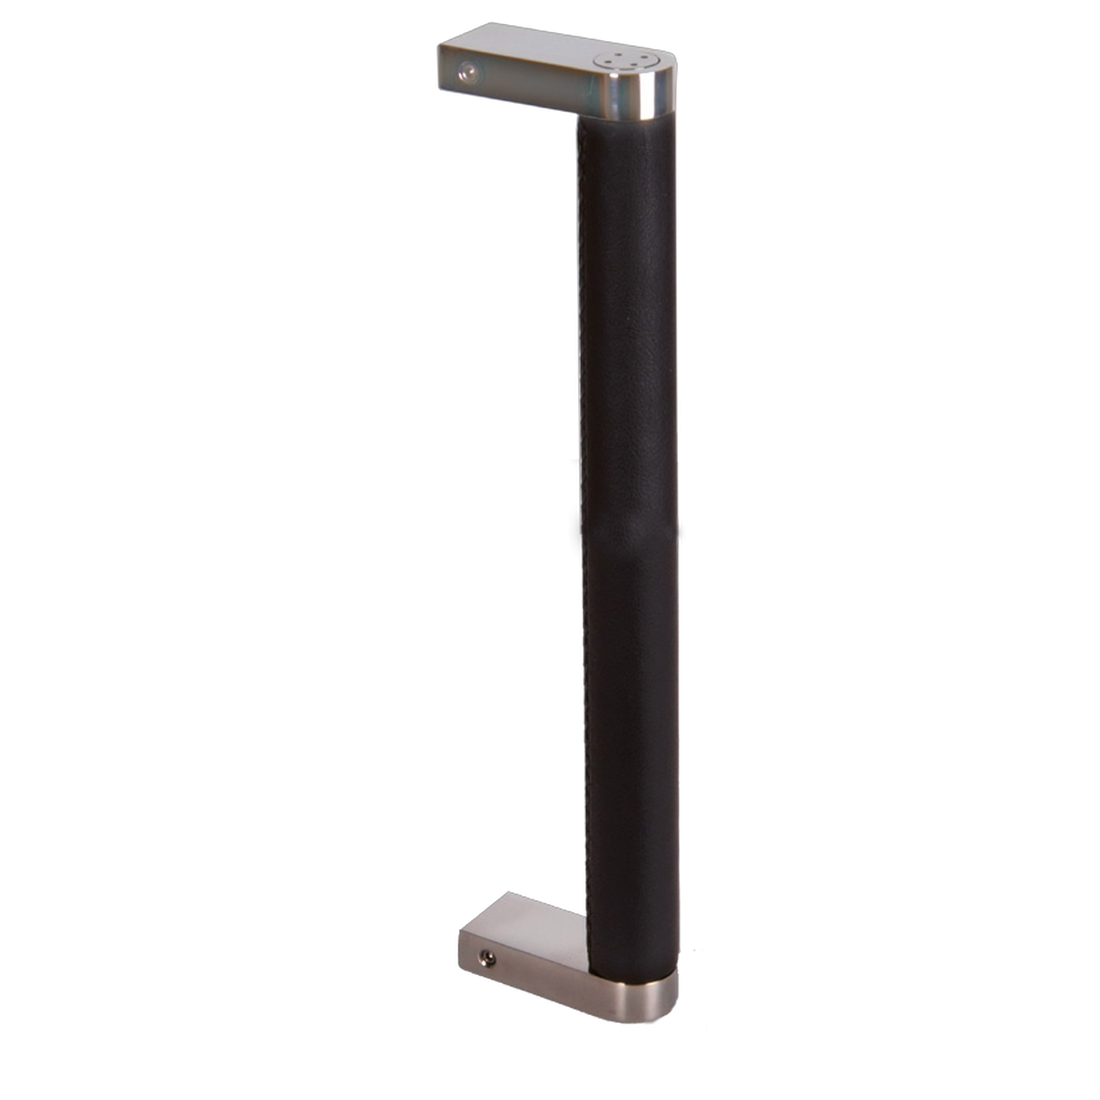 SCI/LEATHER BLACK, POLISHED STAINLESS STEEL, DRILLING DISTANCE 300MM, SINGLE HANDLE